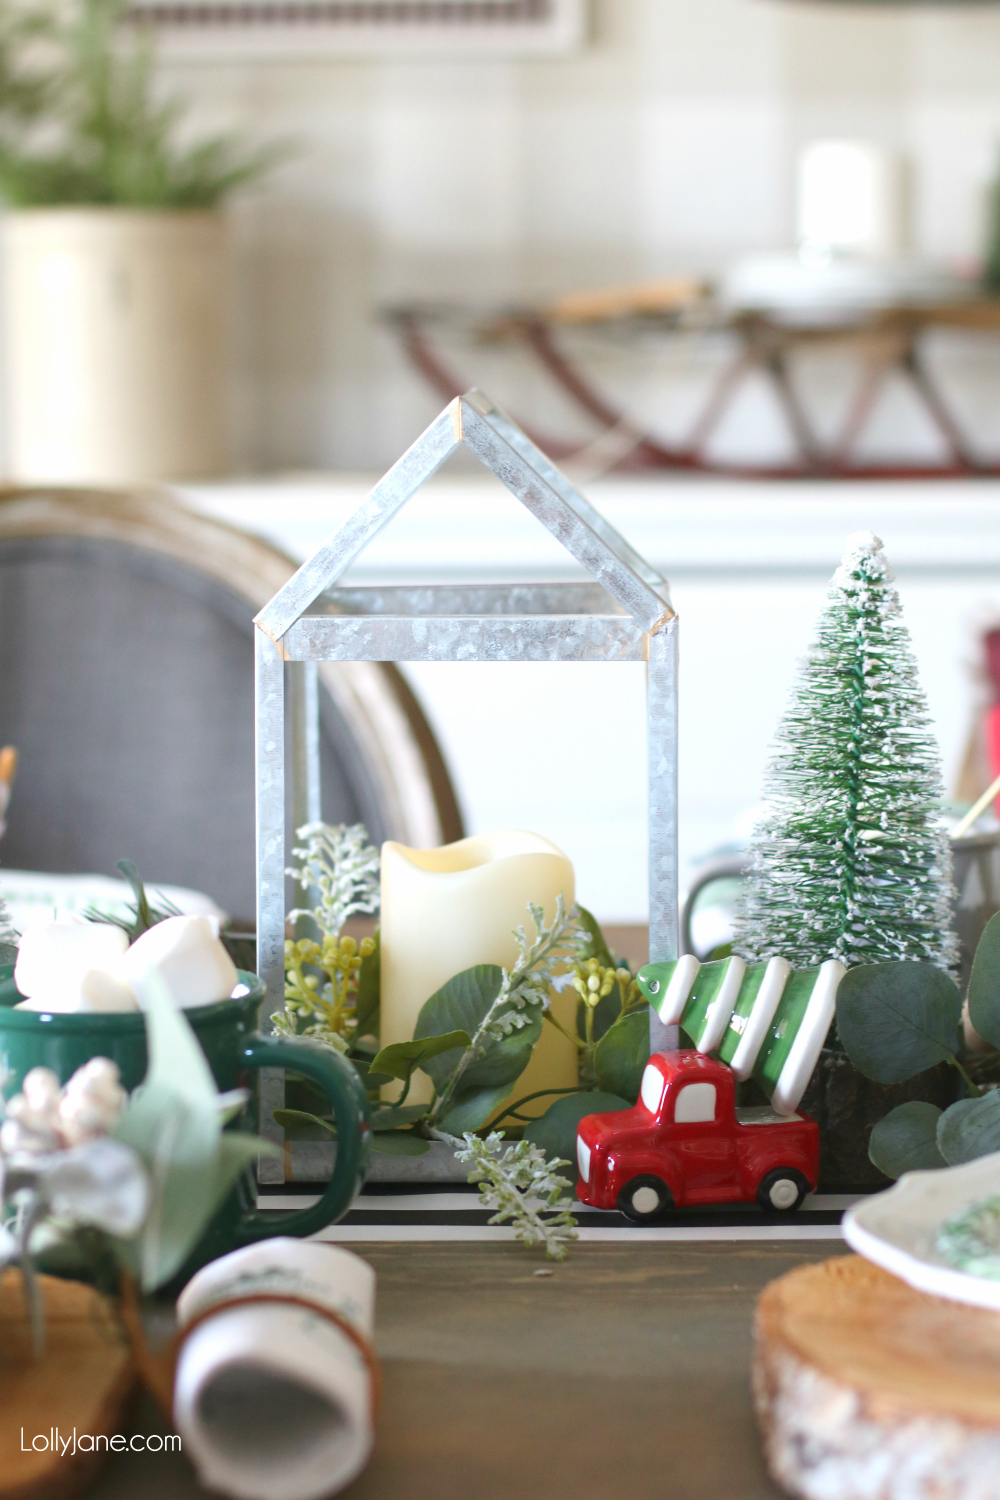 Cutest vintage truck + tree Salt+Pepper shakers! Love this whole setup ready for Christmas dinner! #christmas #christmastablescape #christmascenterpiece #centerpiece #wintertablescape #diy